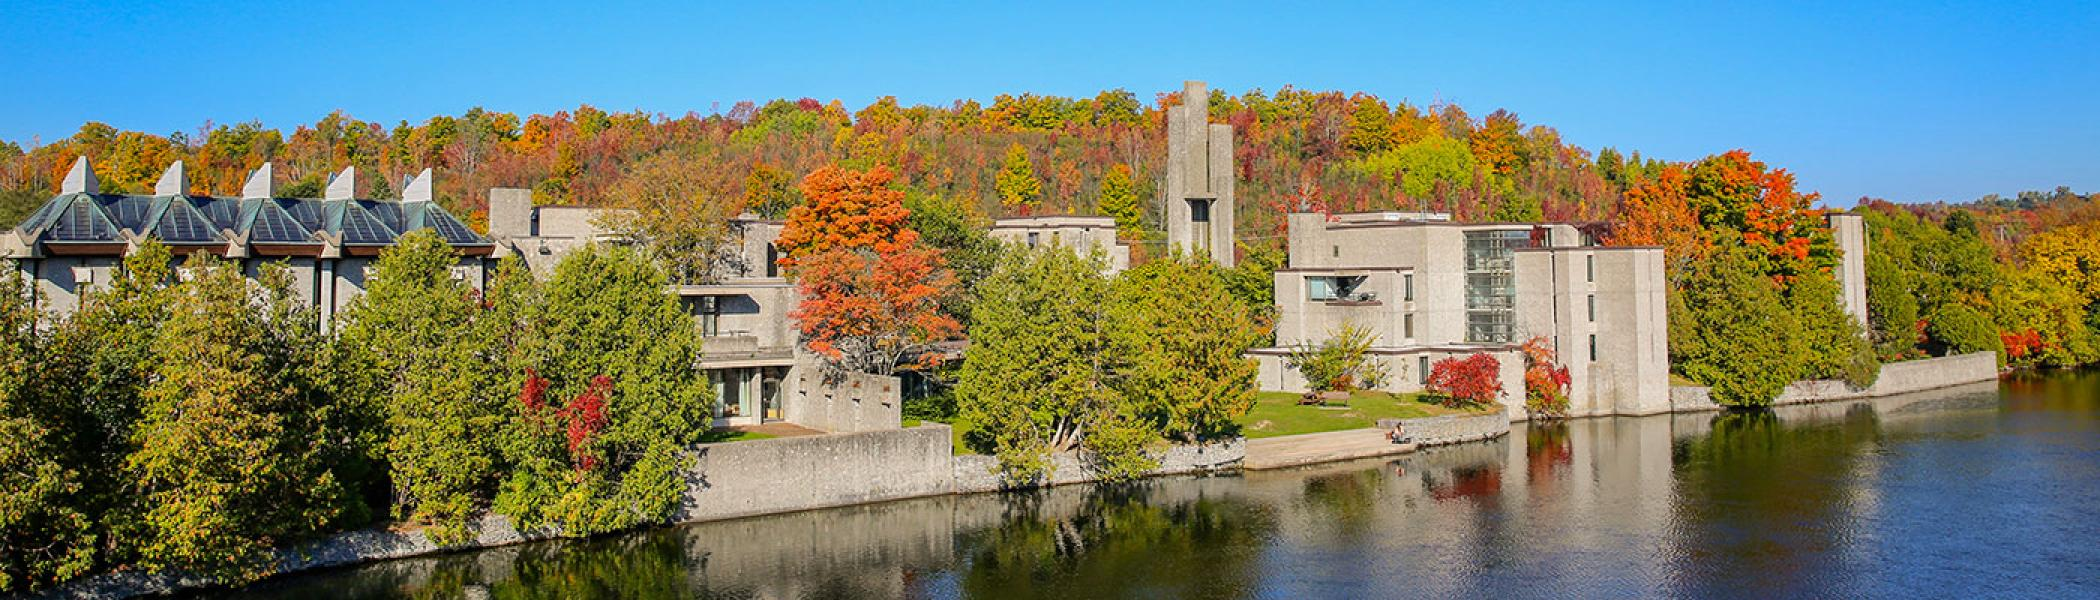 Exterior view of Champlain college buildings in amongst the fall trees on a sunny fall afternoon